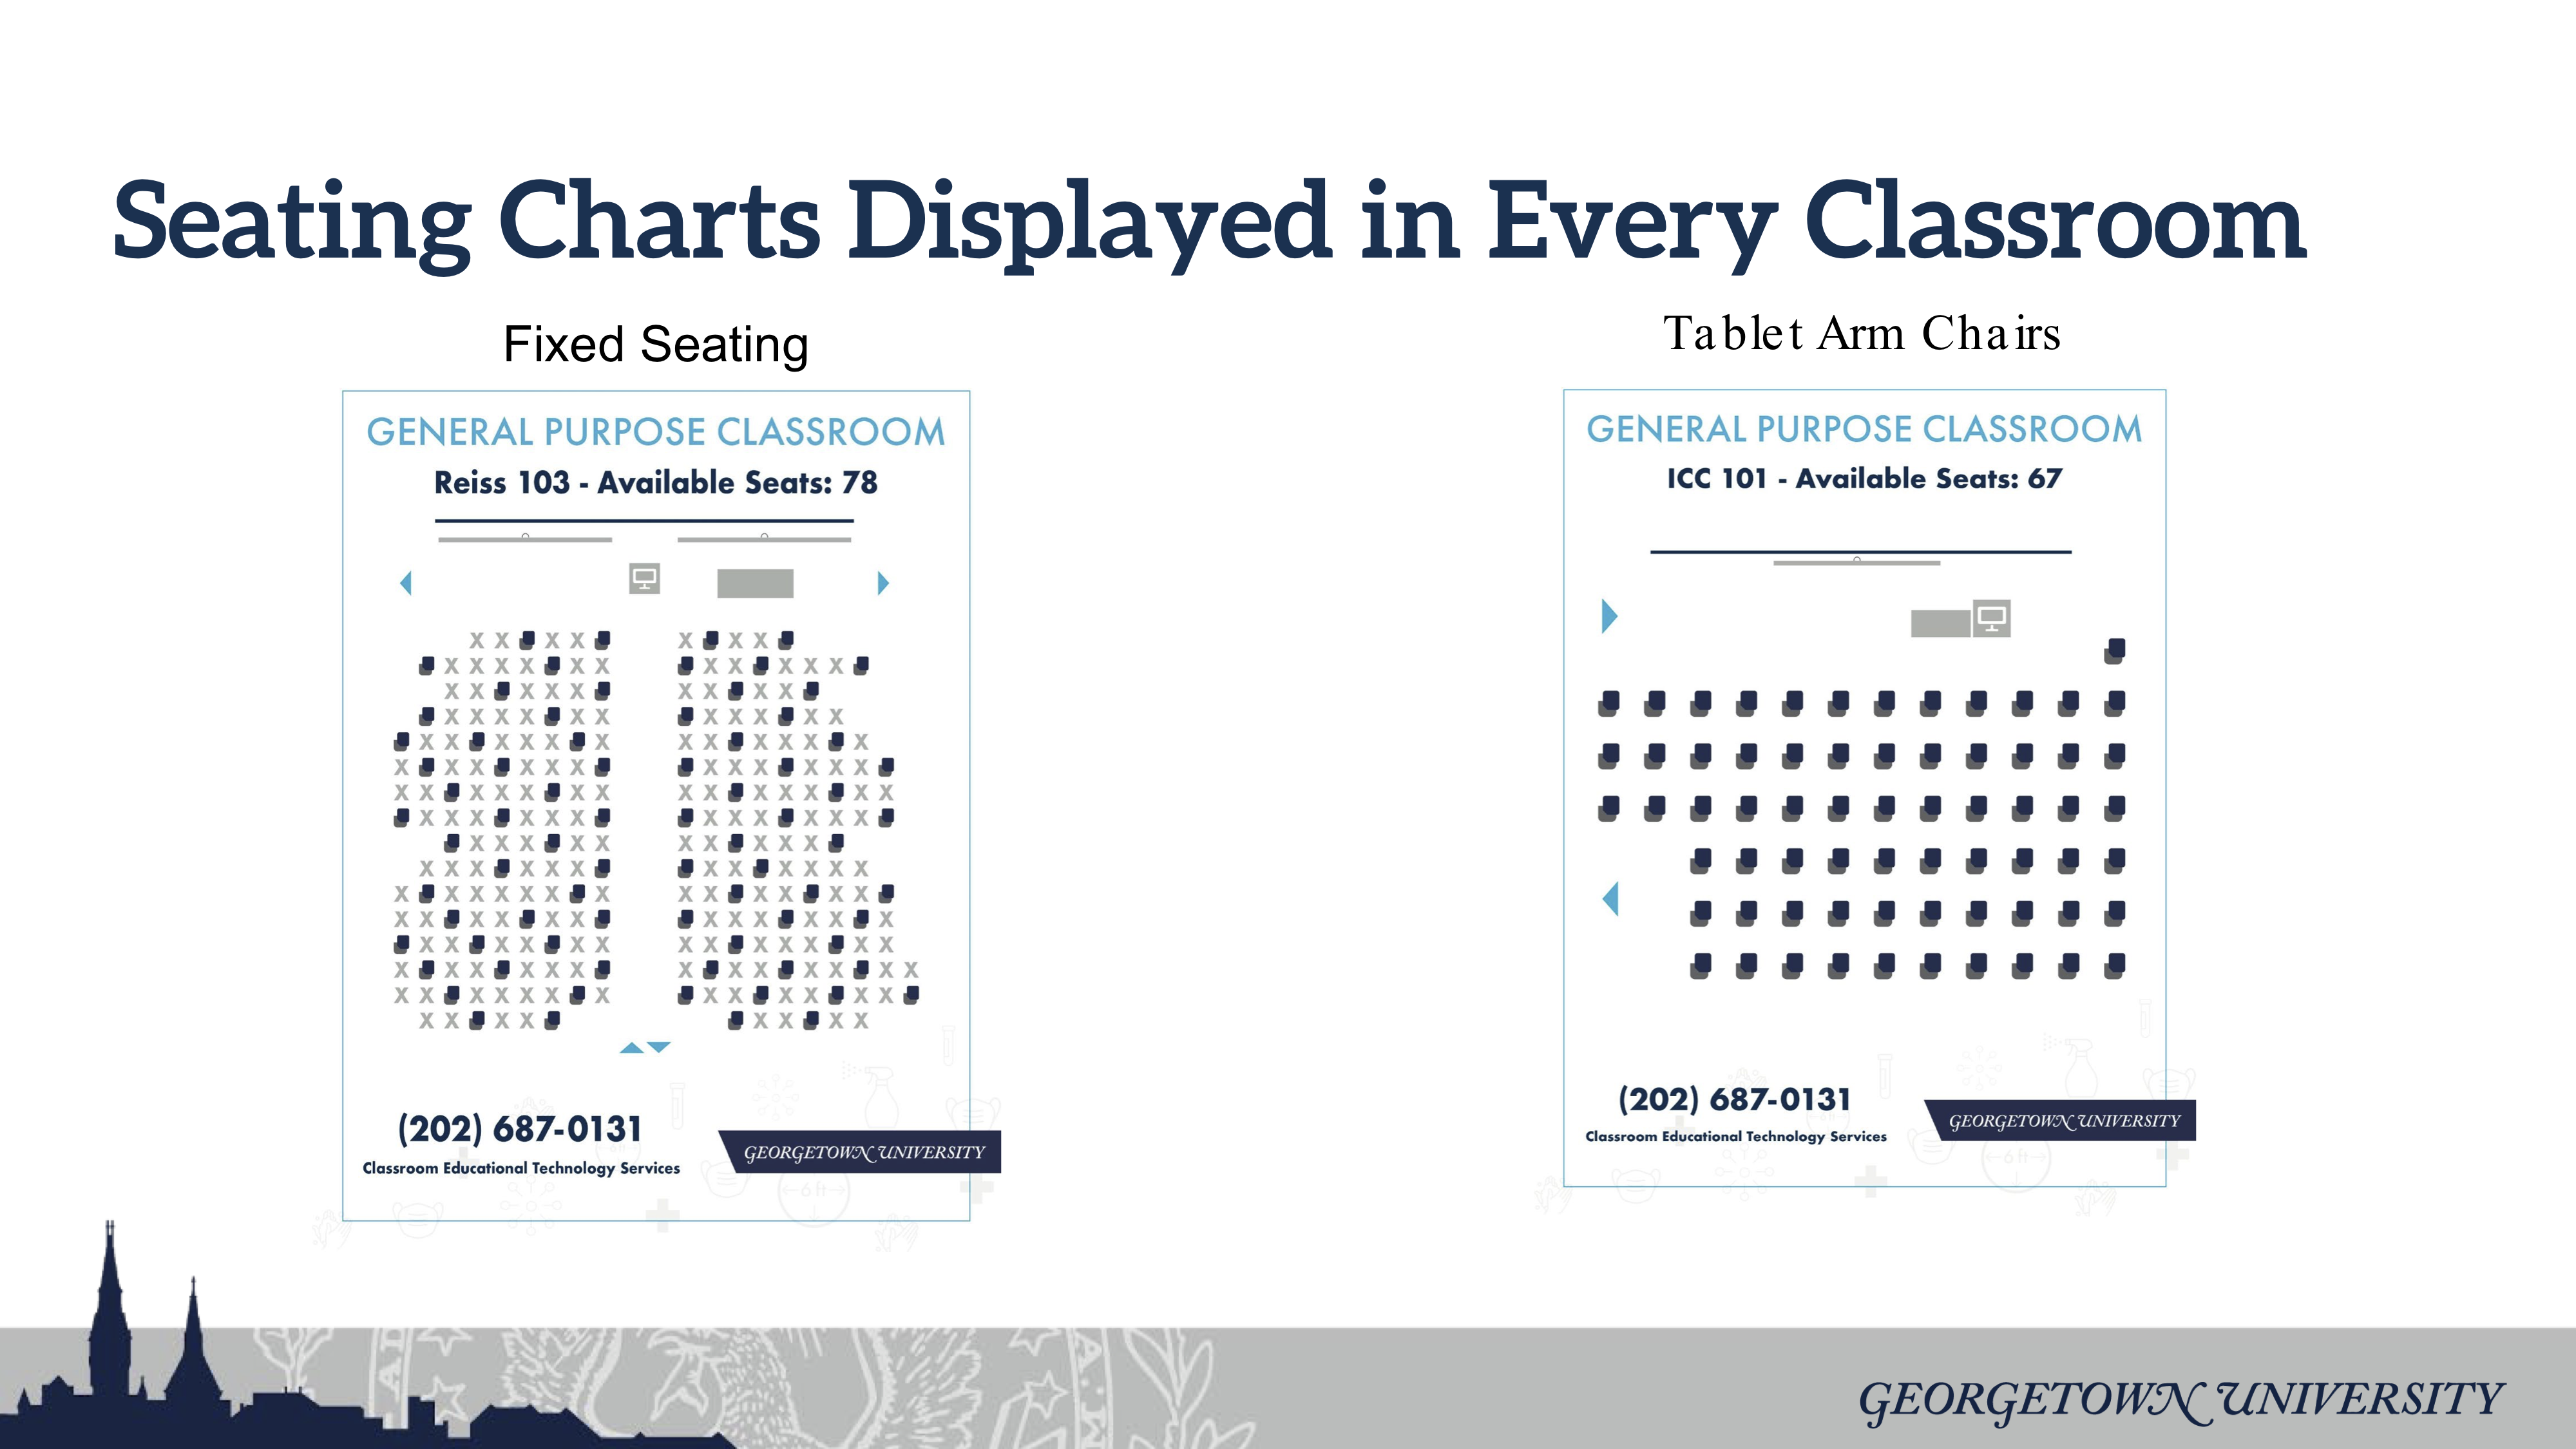 Seating Charts for General Purpose Classrooms displays Fixed Seating and Tablet Arm Chair Classrooms